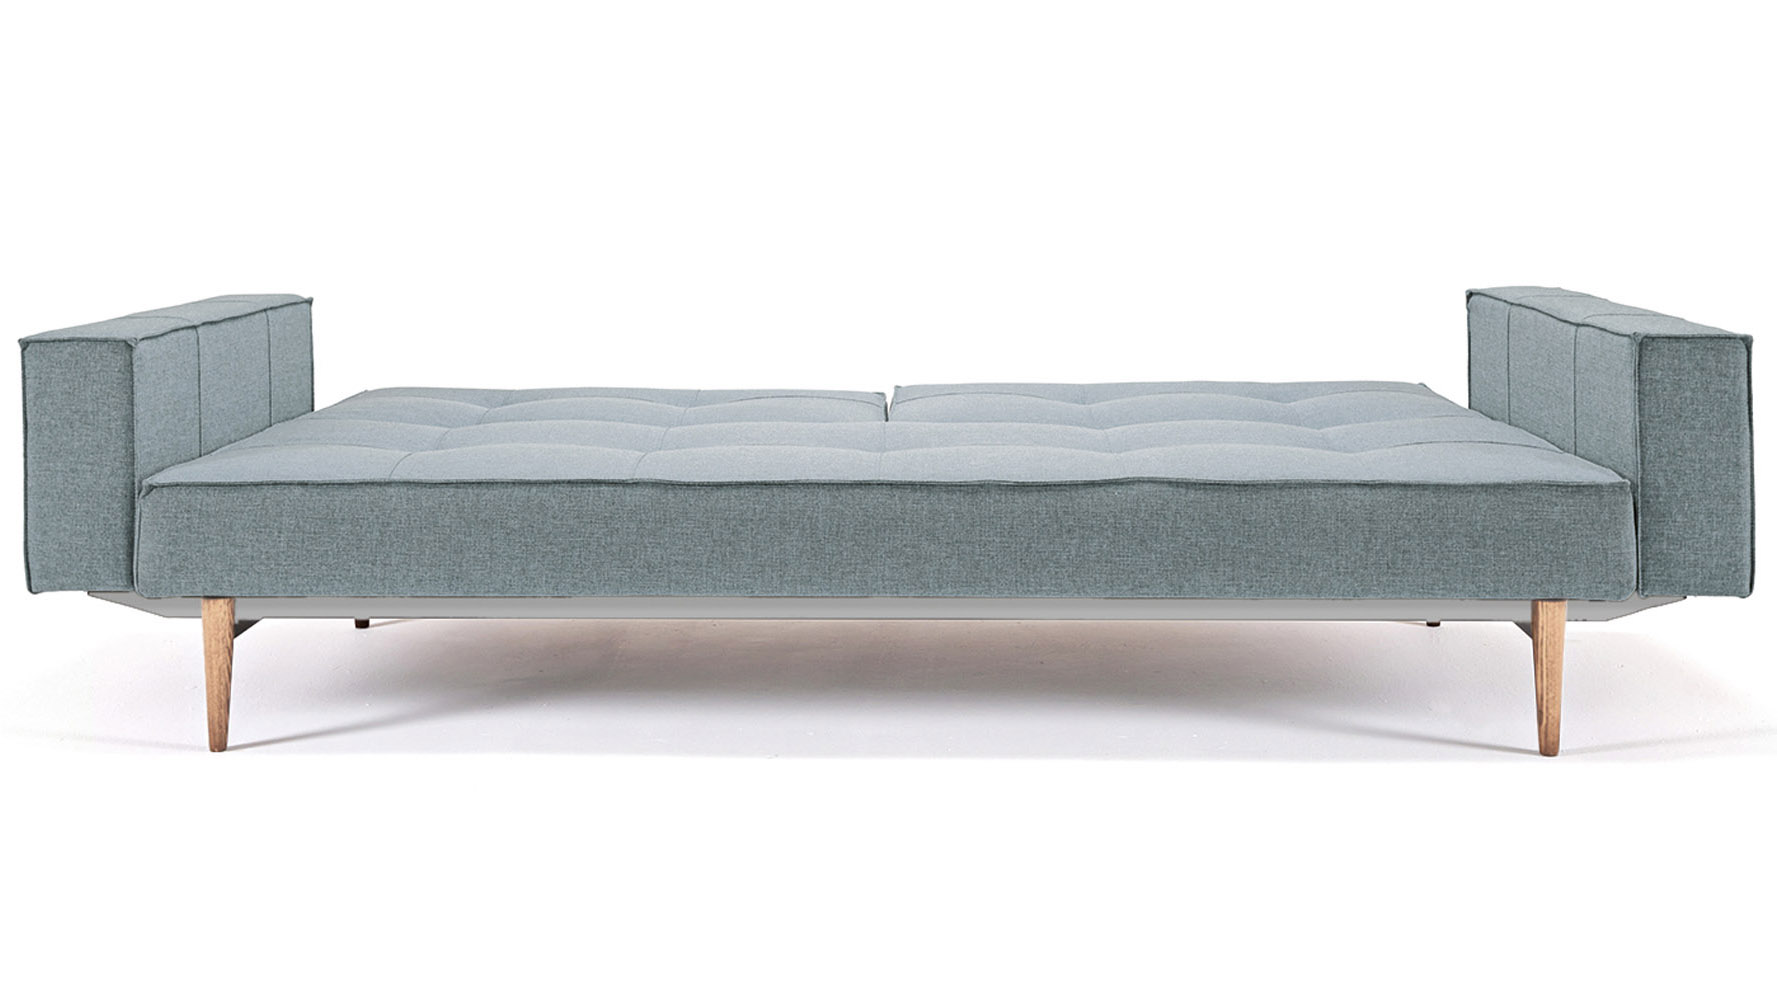 Marvelous photograph of  LIVING / Sleepers / Sofi Split Back Sofabed with Armrests Wood Base with #835C48 color and 1778x1000 pixels